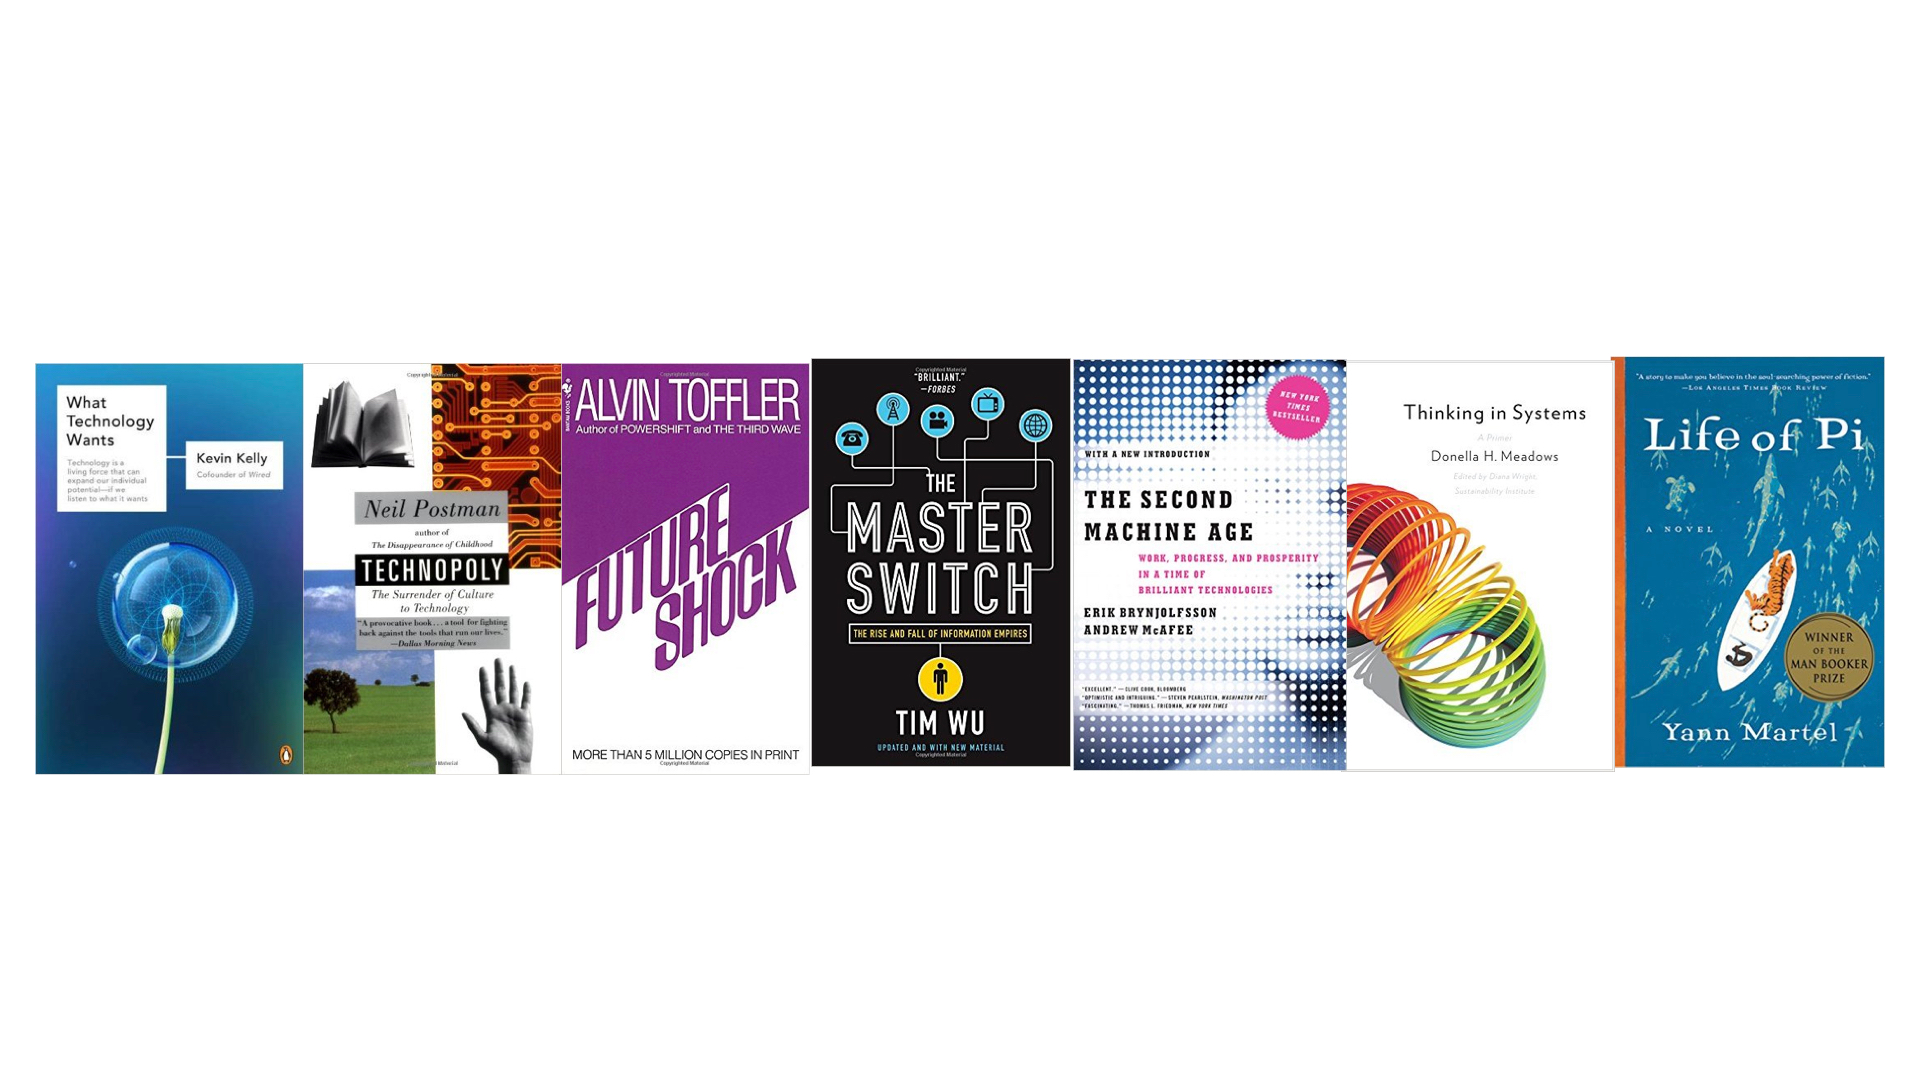 /9-books-to-help-you-understand-technology-and-systems-bb3f4d2d9dda feature image